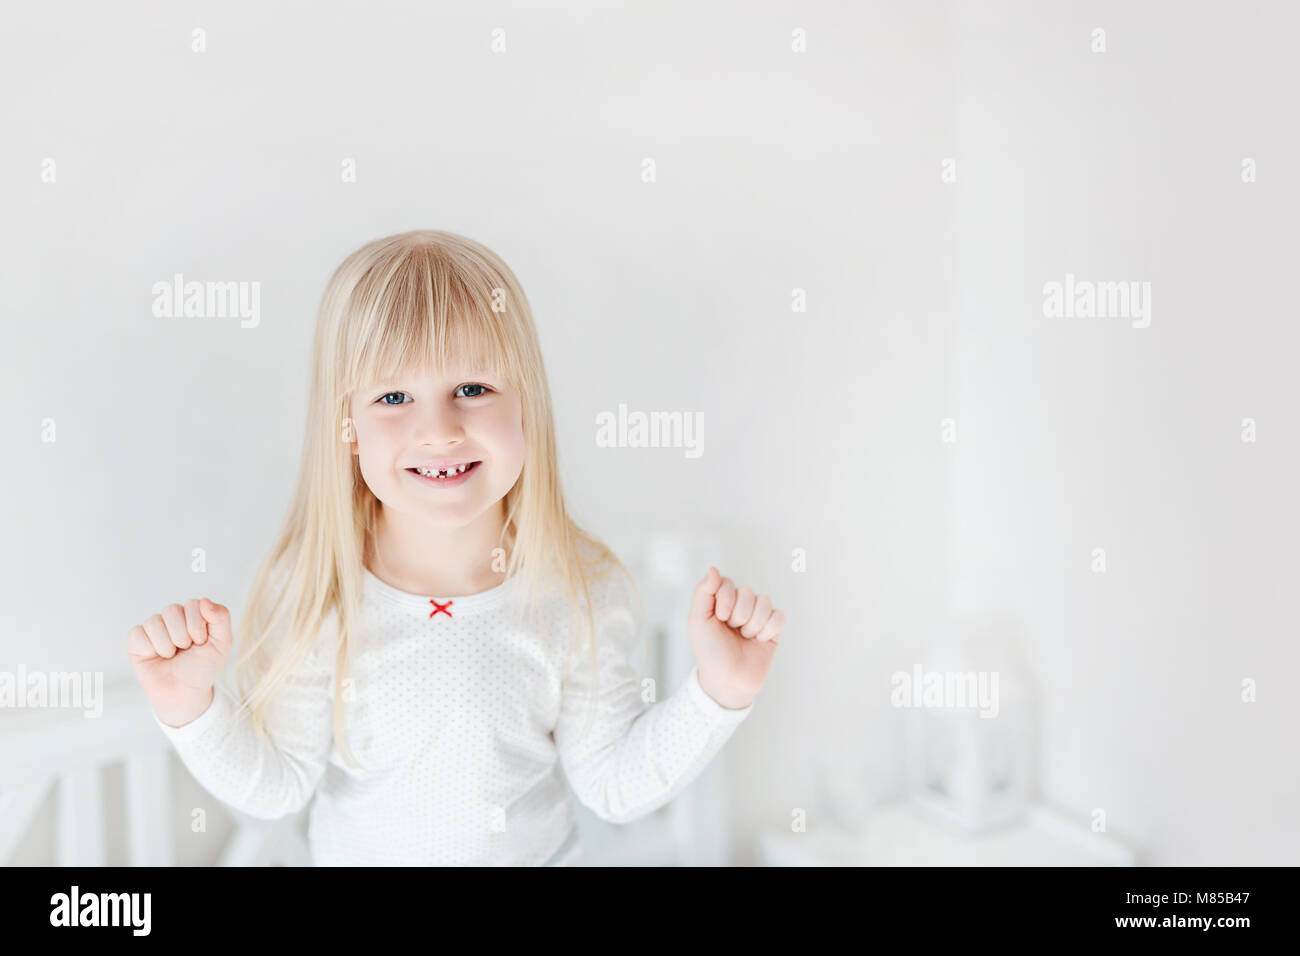 Portrait of little cute girl standing on lit. Sourire Adorable enfant. Kid blonde levant les poings. La victoire Photo Stock